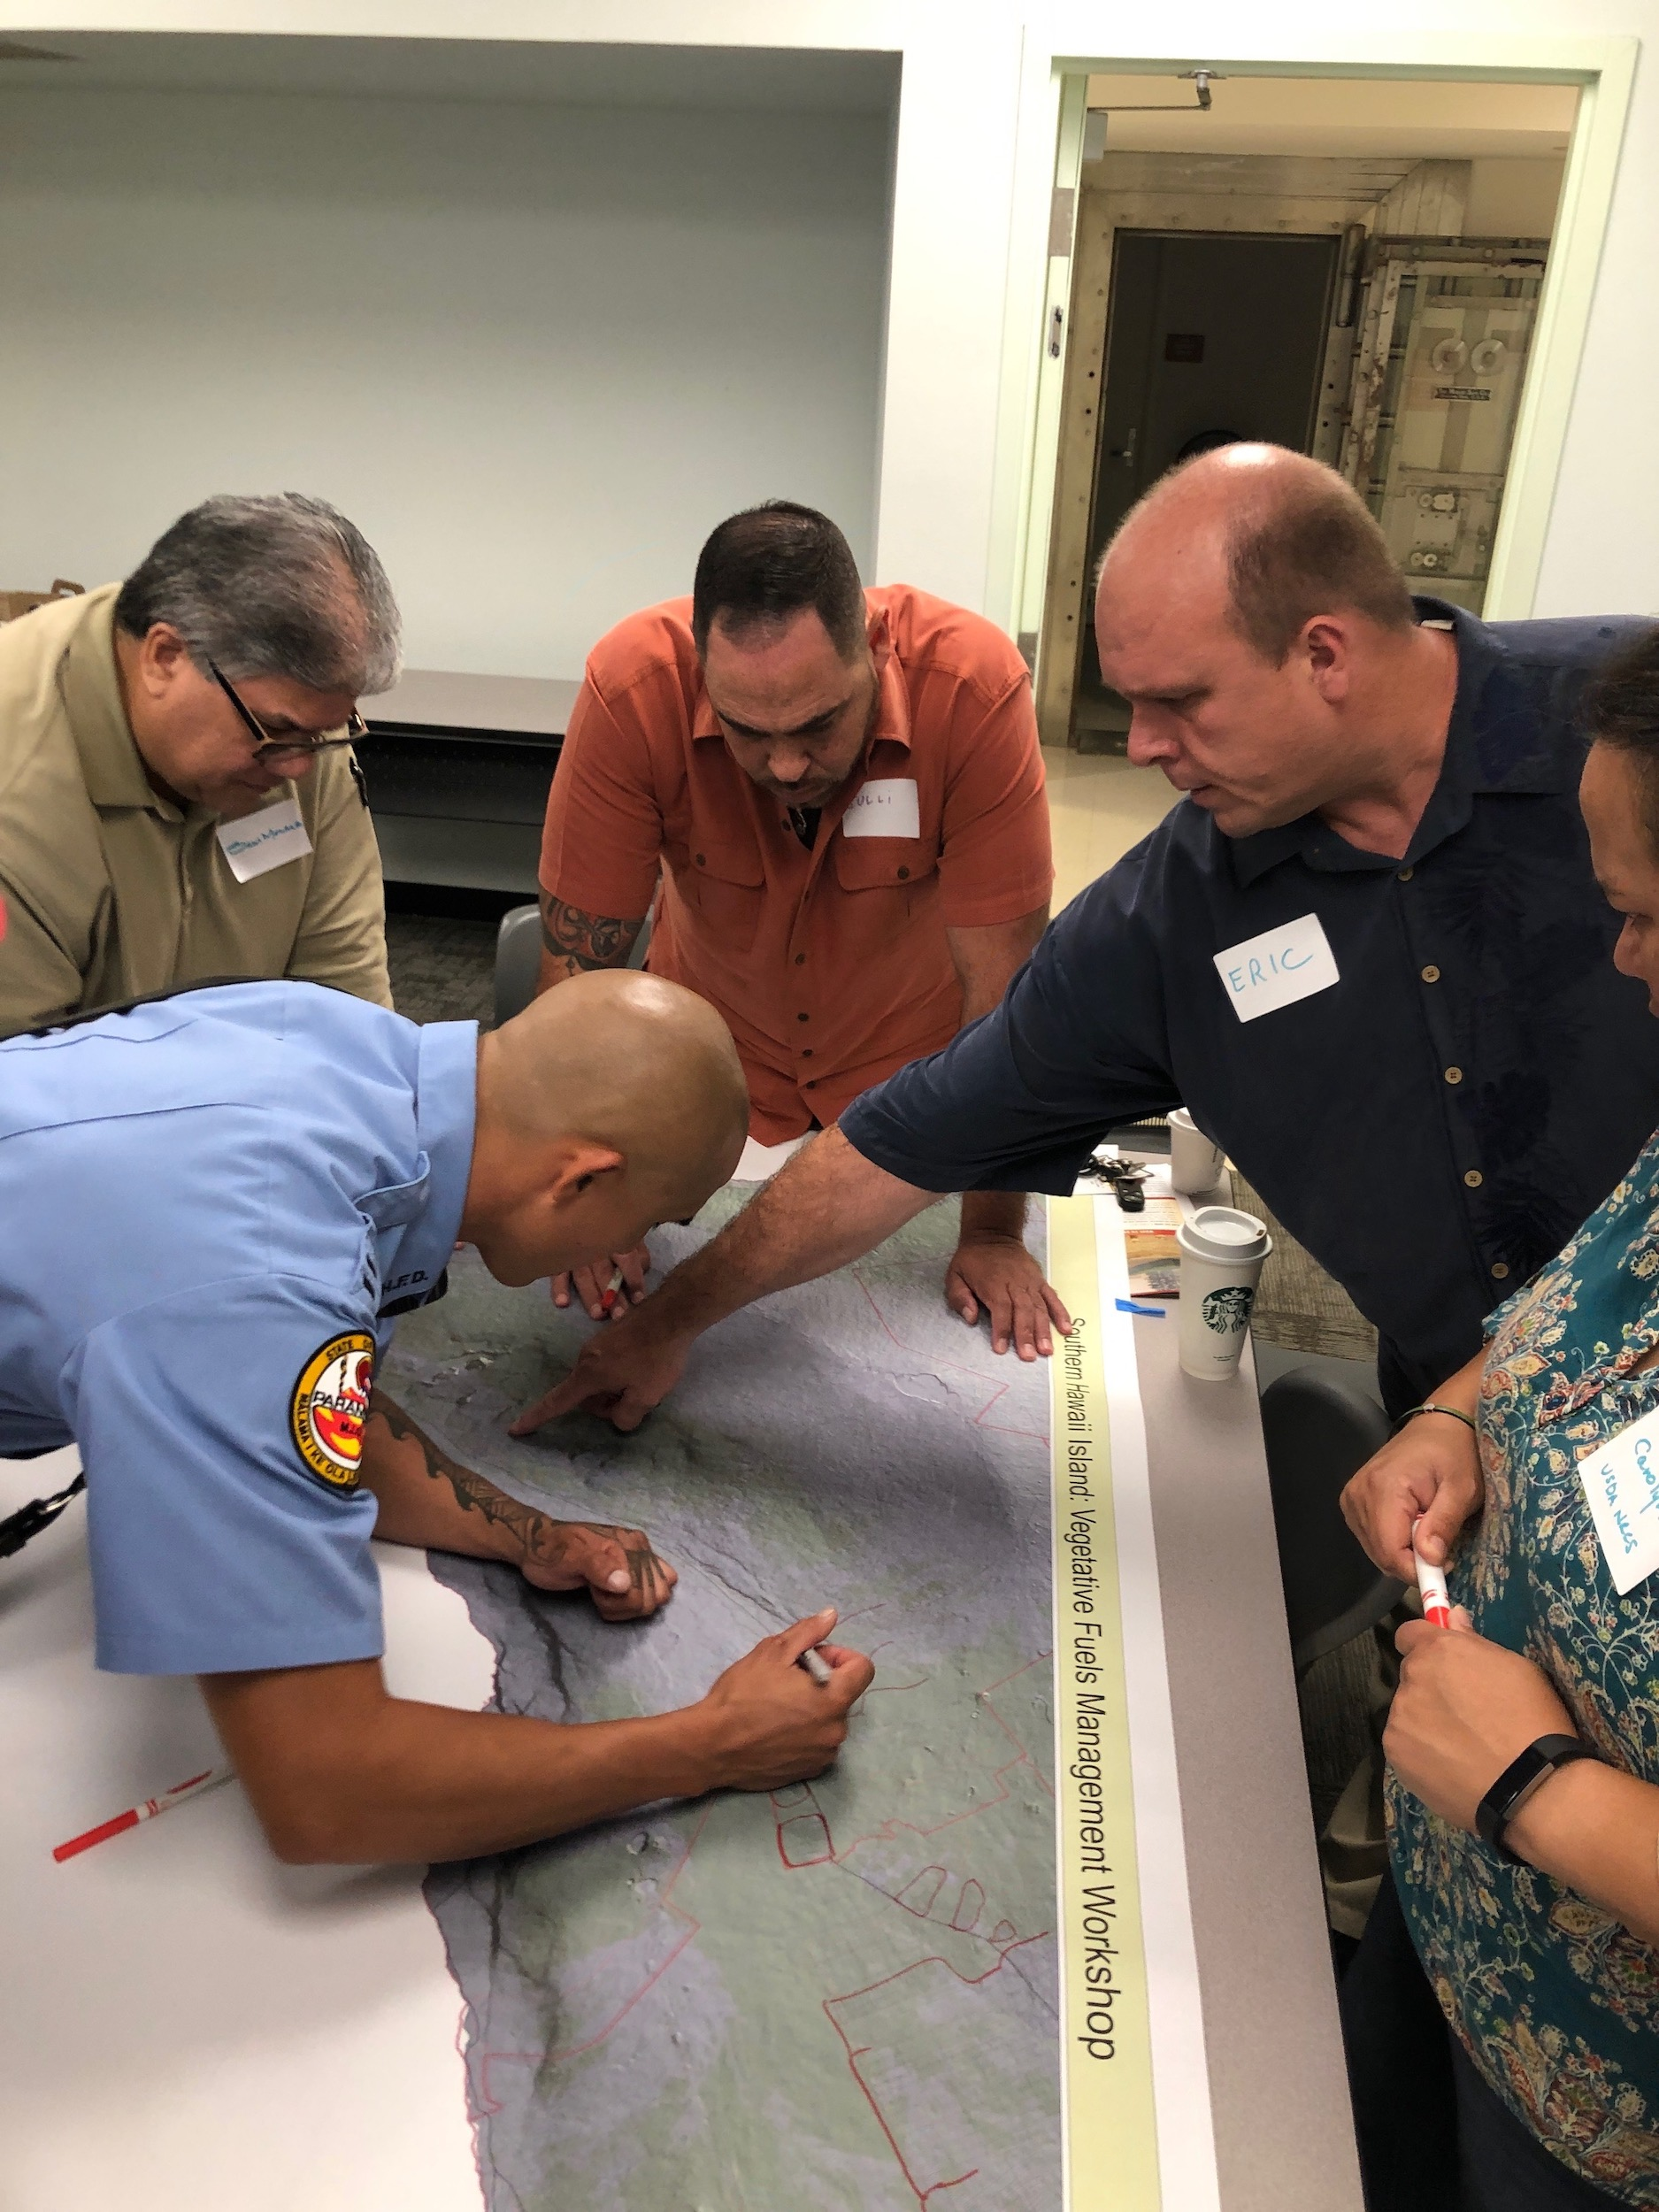 Hawaii Island Hilo Vegetative Fuels Management Collaborative Action Planning Workshop_2_22_2019_6.jpg